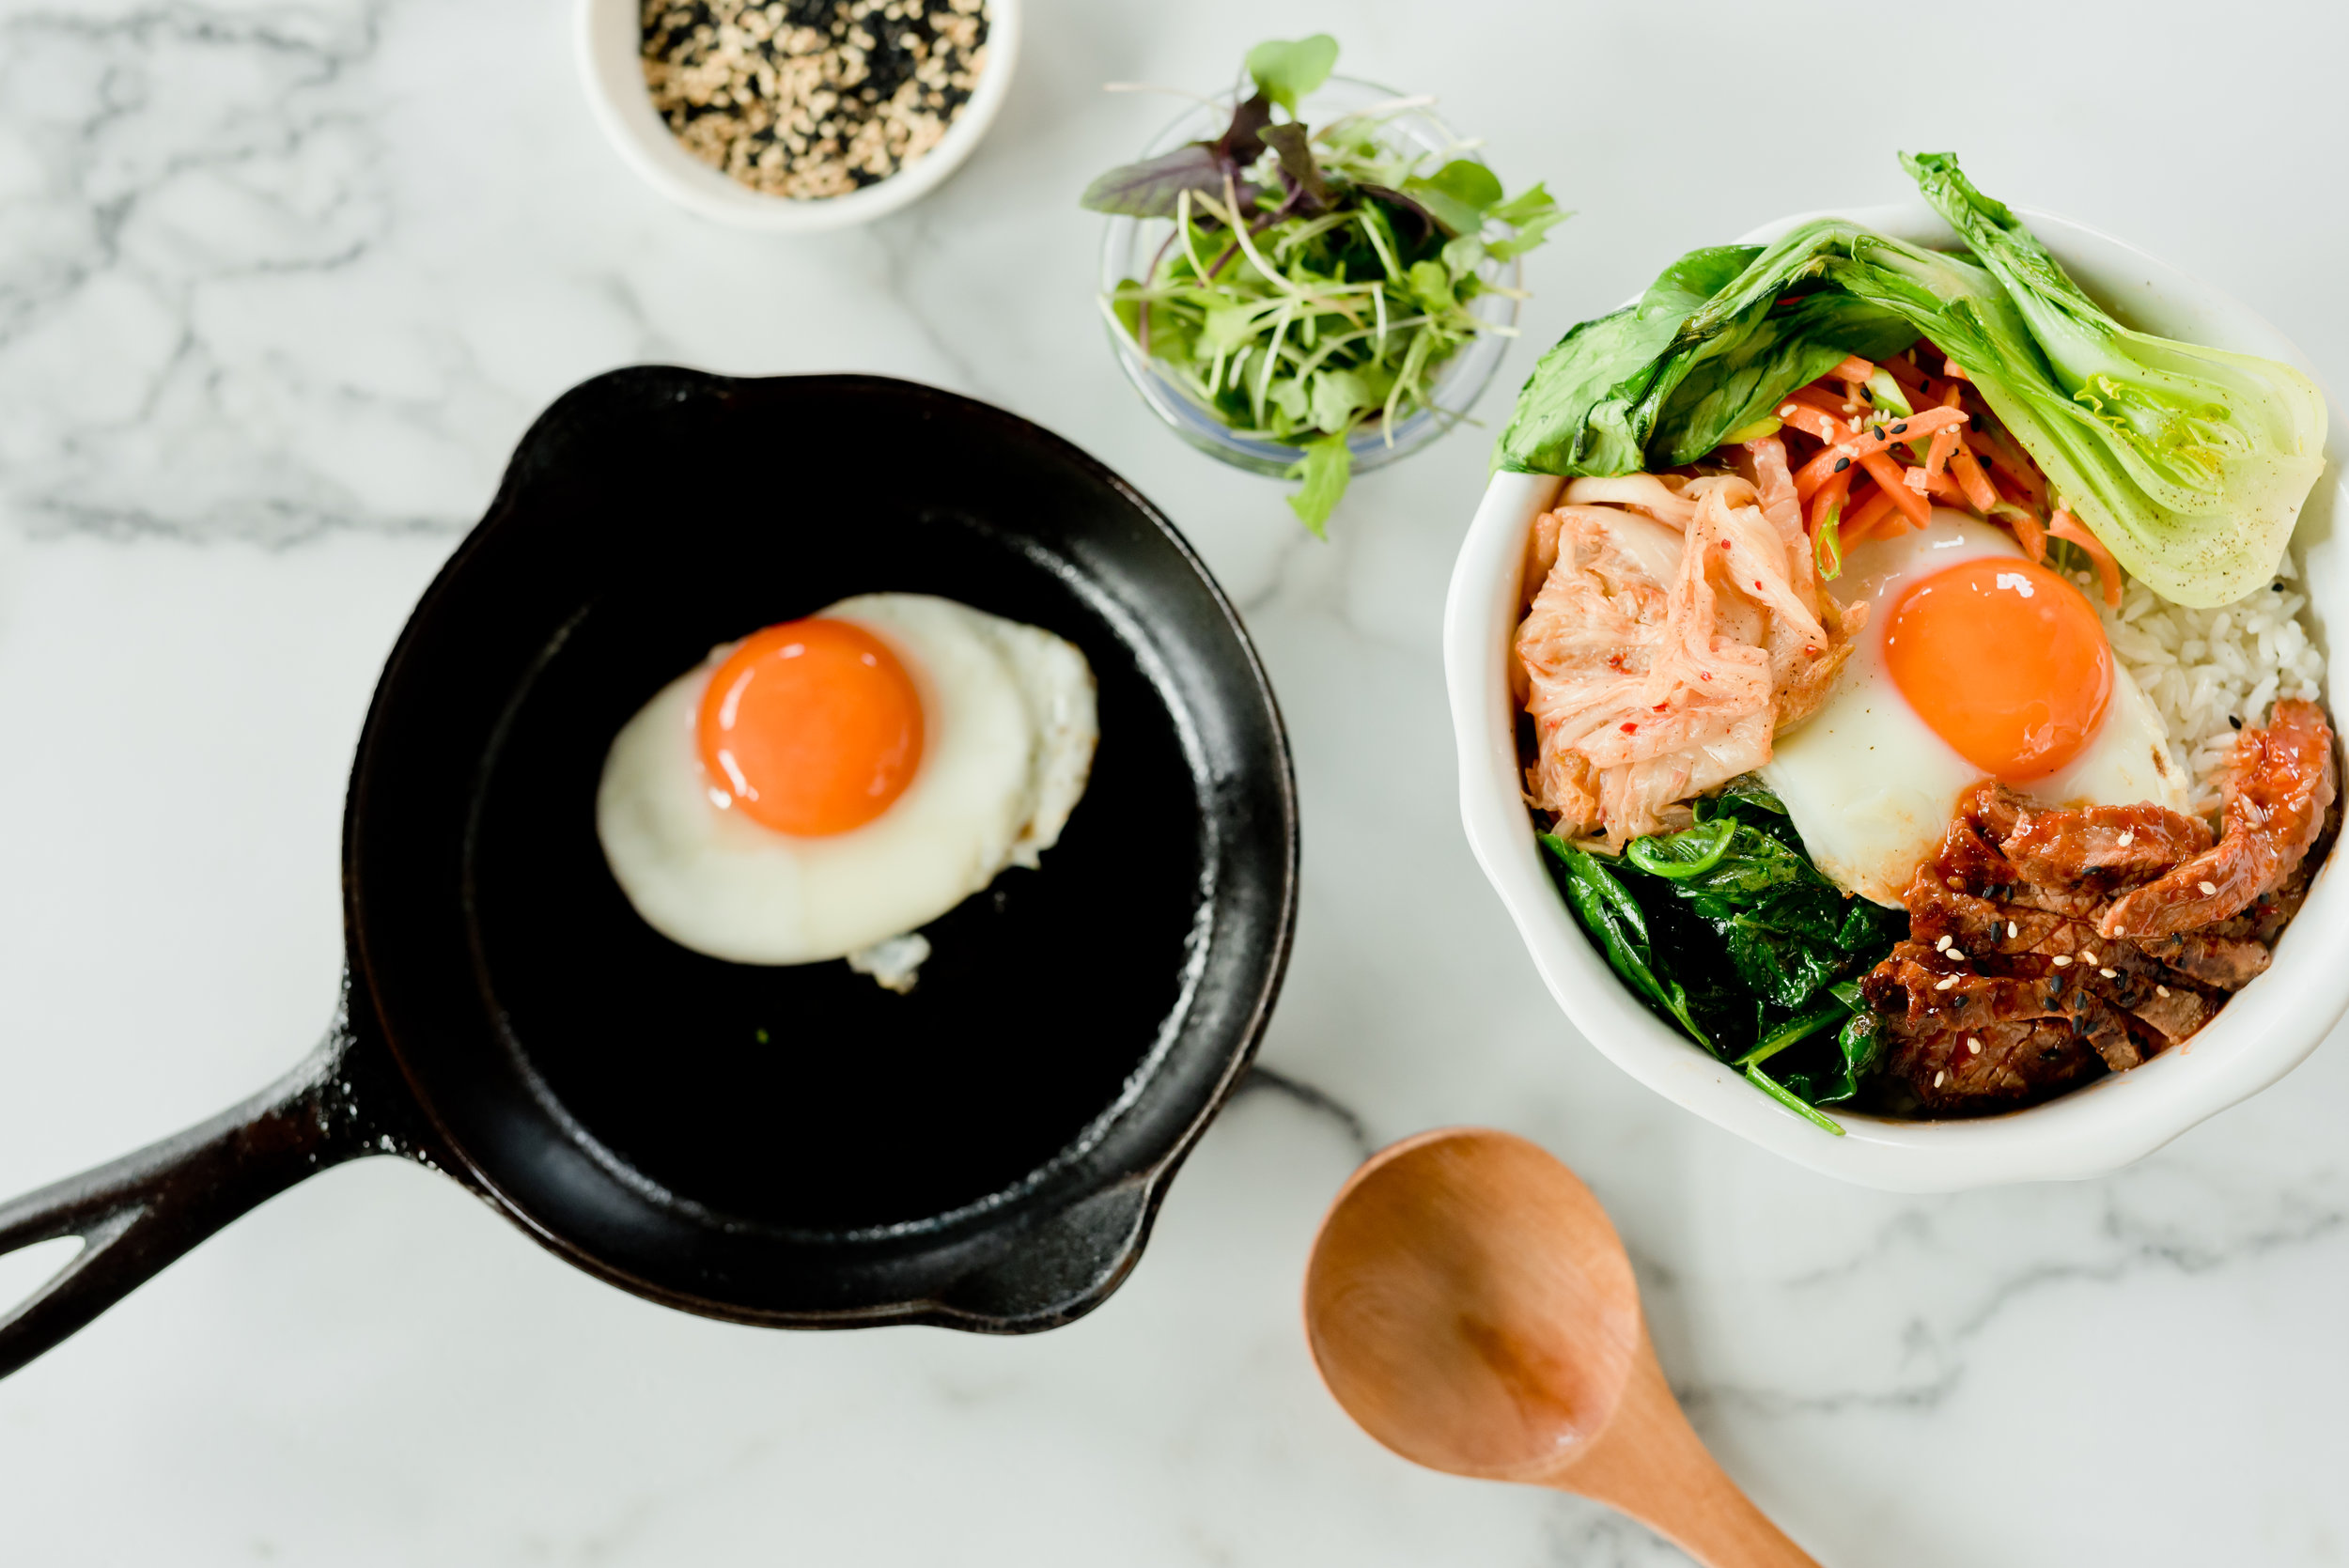 Eggs aren't just for breakfast. They can be added to a number of savory dishes suitable for all-day consumption, like the rice dish pictured above.